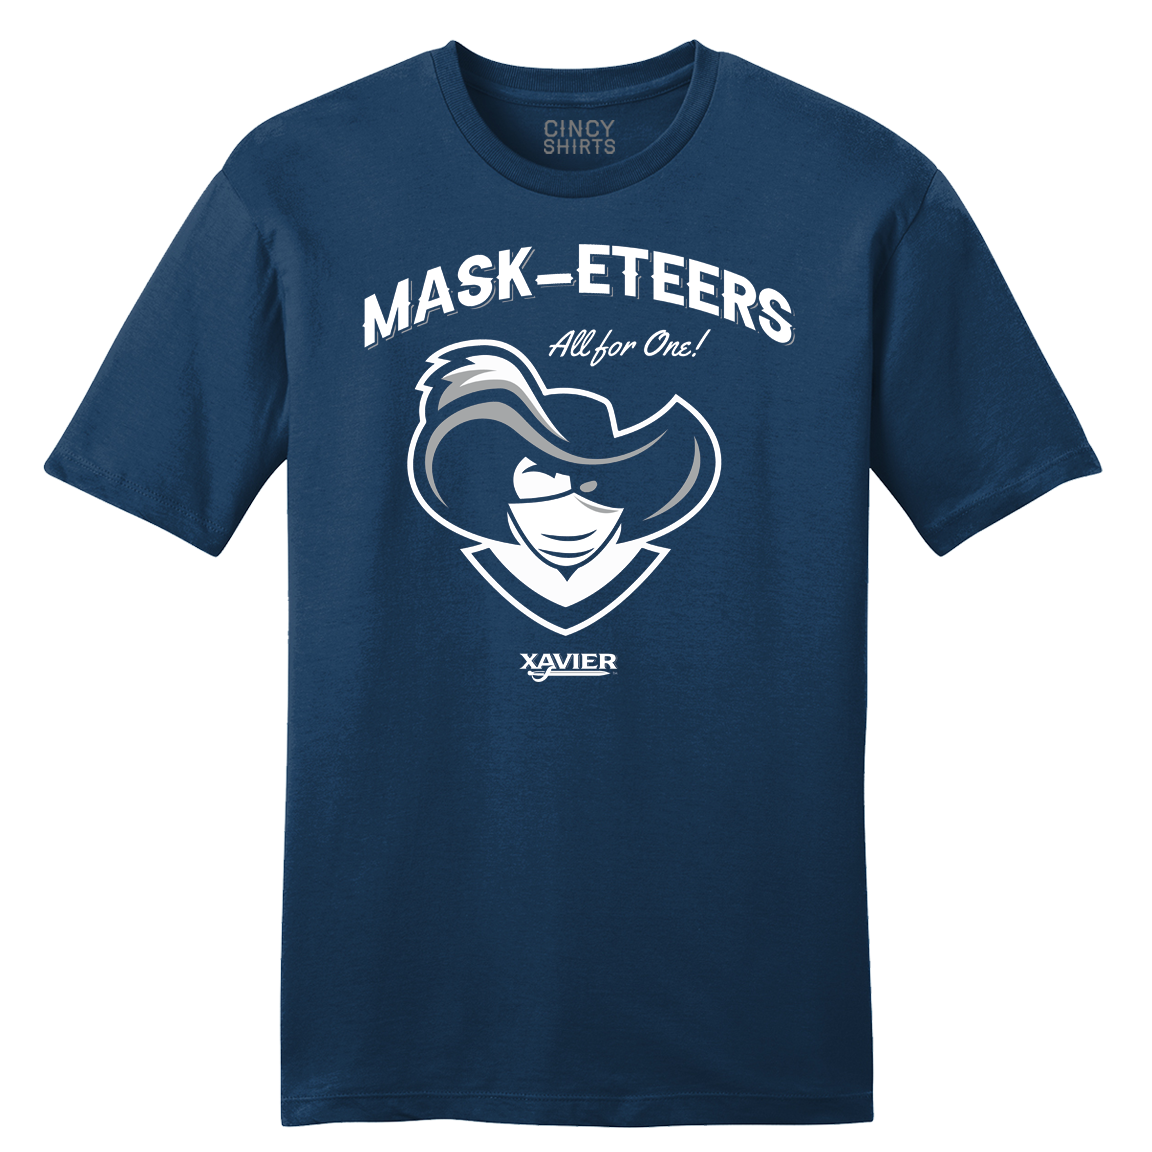 "Mask-eteers ""All For One!"" - Cincy Shirts"